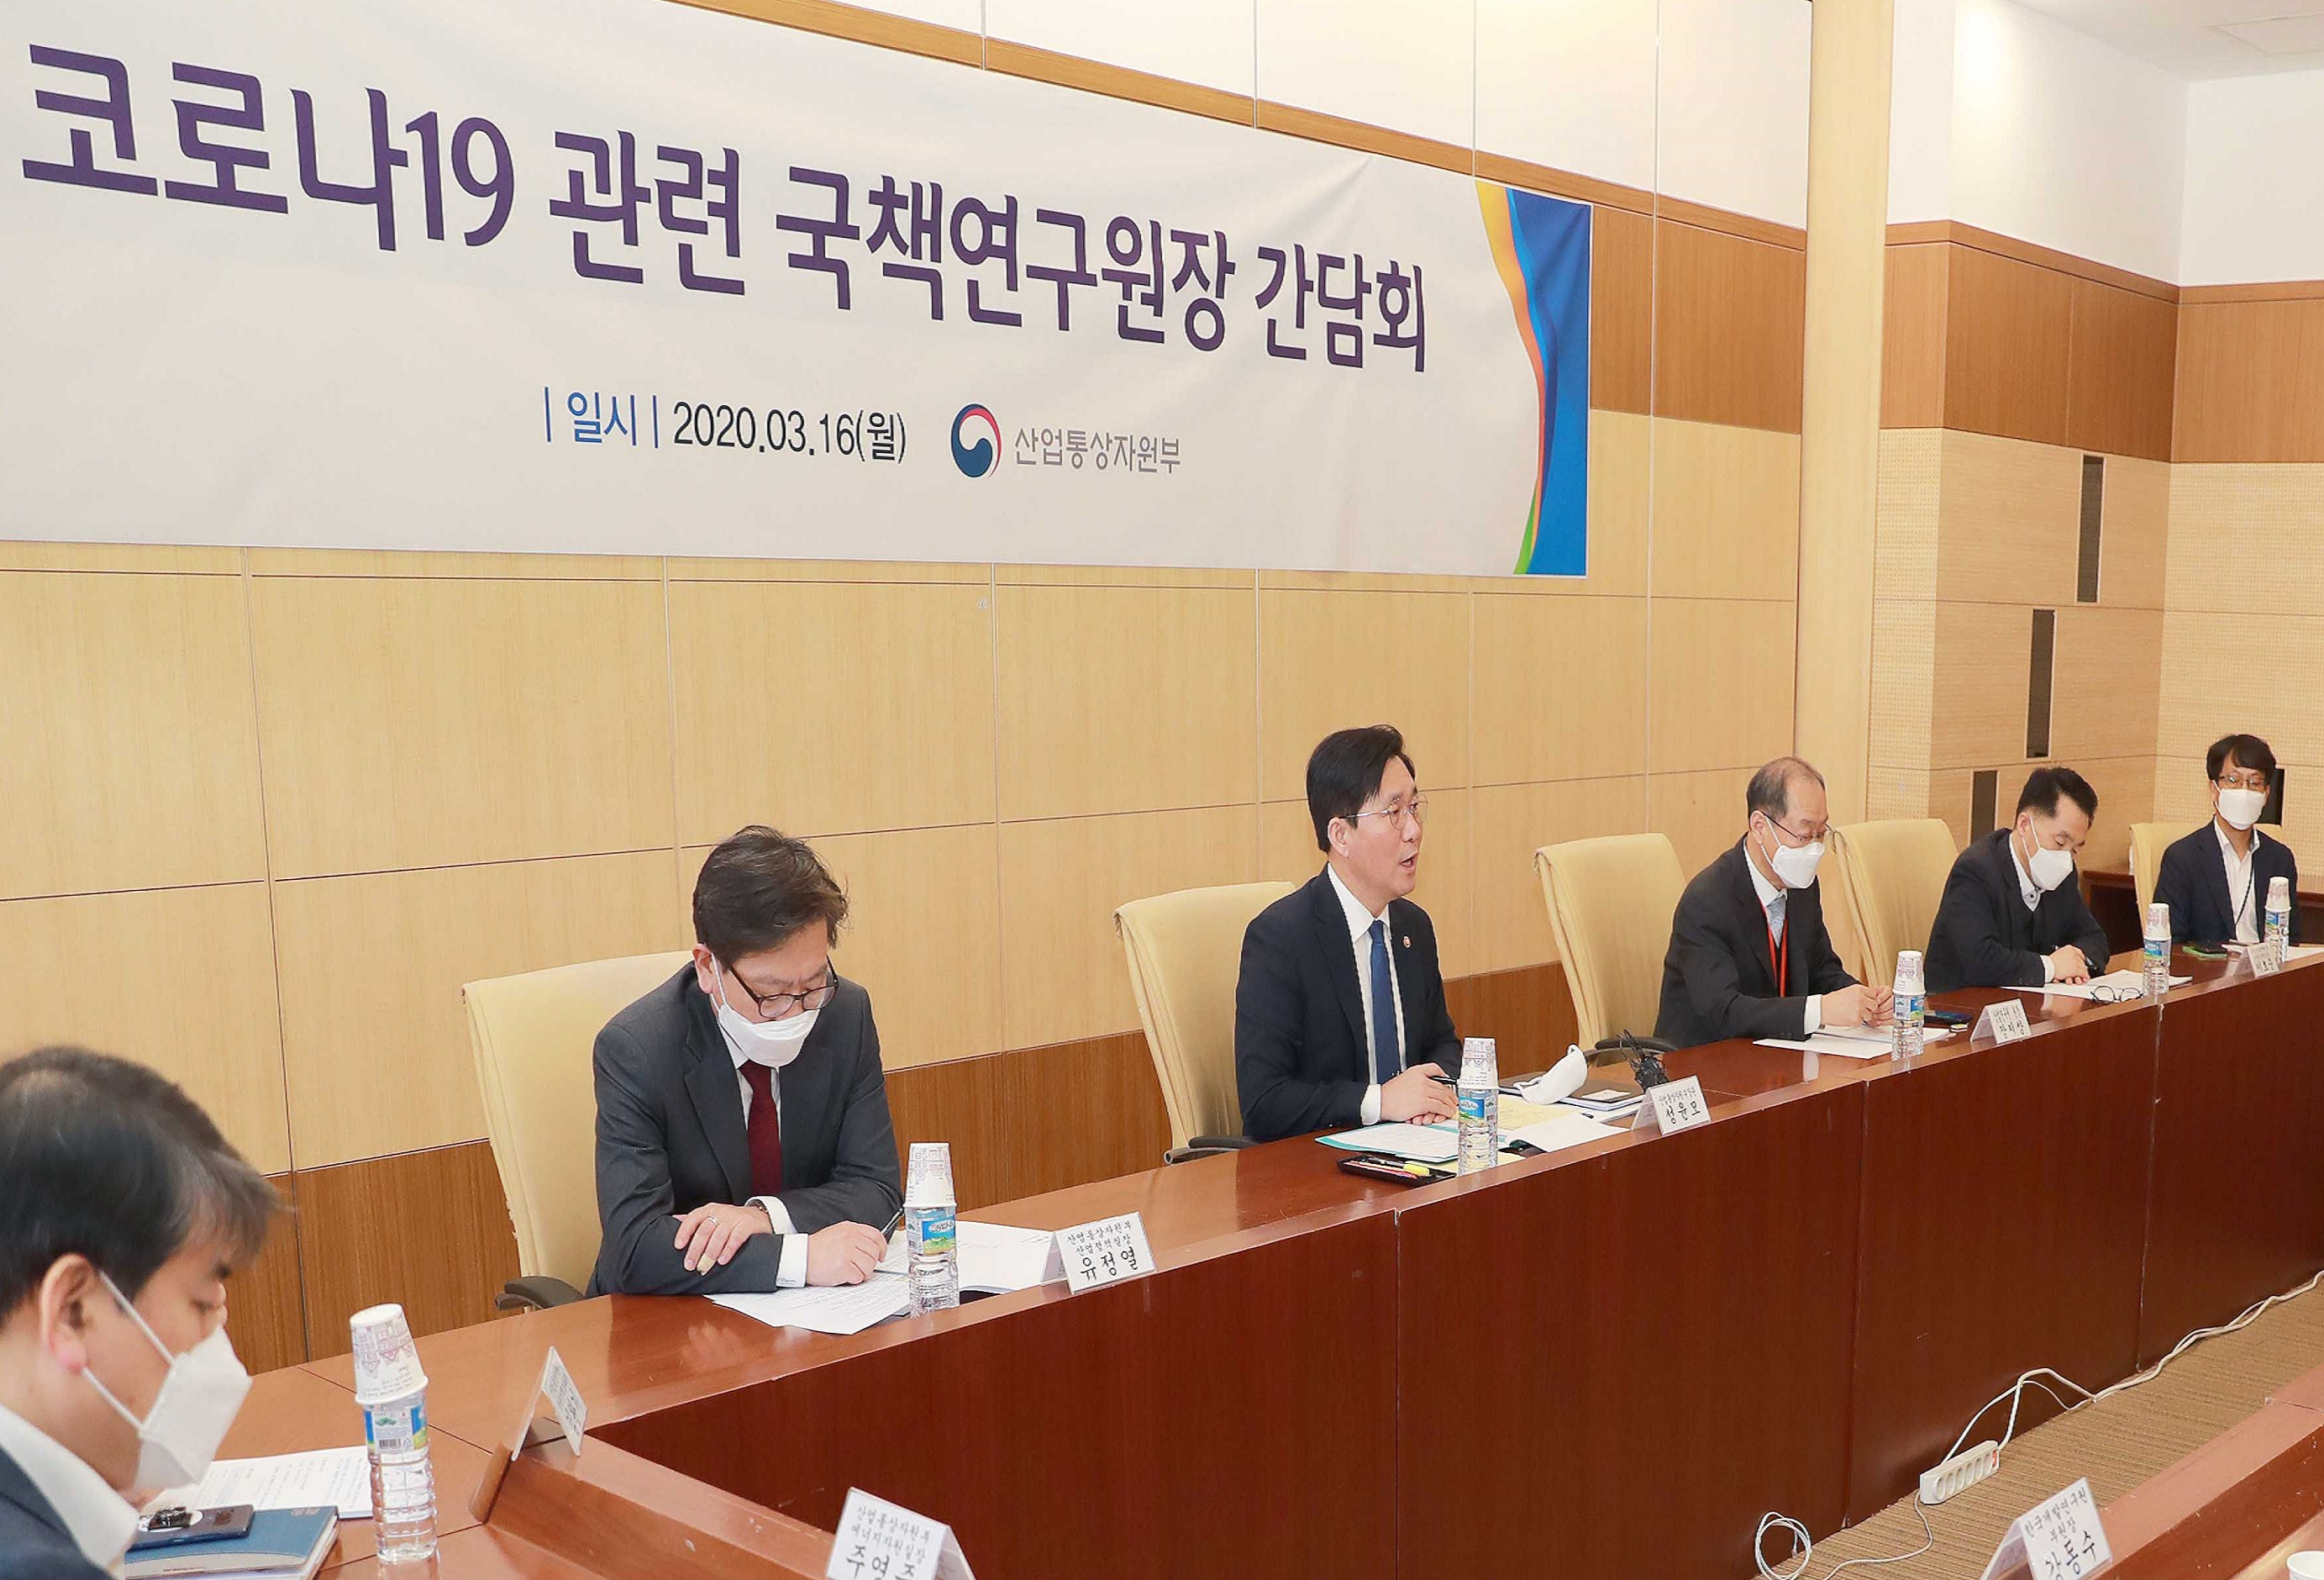 Minister Sung discusses coronavirus countermeasures with state-funded economic think tank representatives Image 0